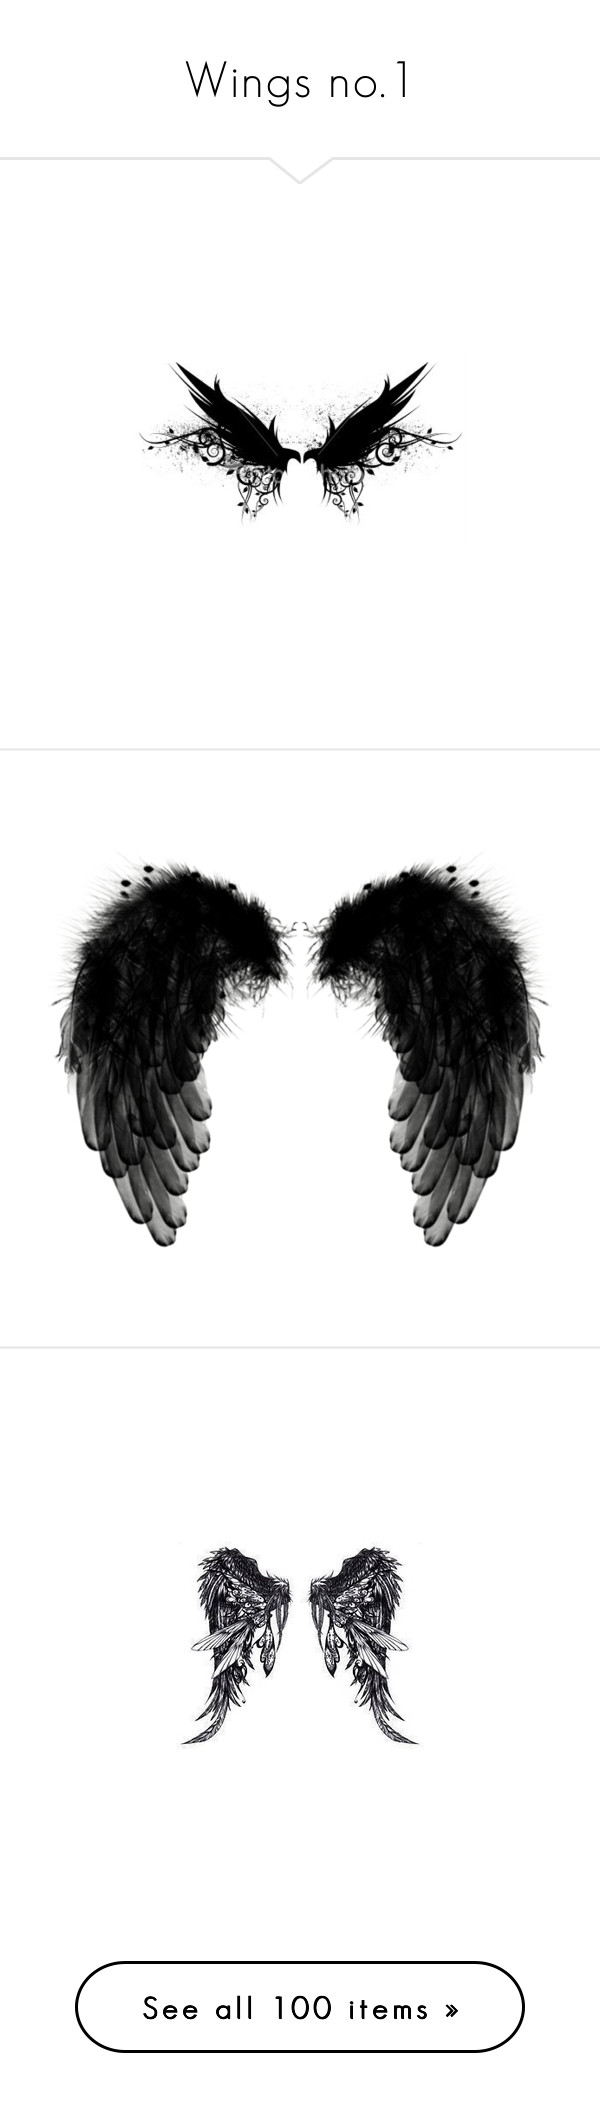 """Wings no.1"" by amygreene-1 ❤ liked on Polyvore featuring wings, backgrounds, butterflies, black, decor, fillers, text, quotes, saying and phrase"